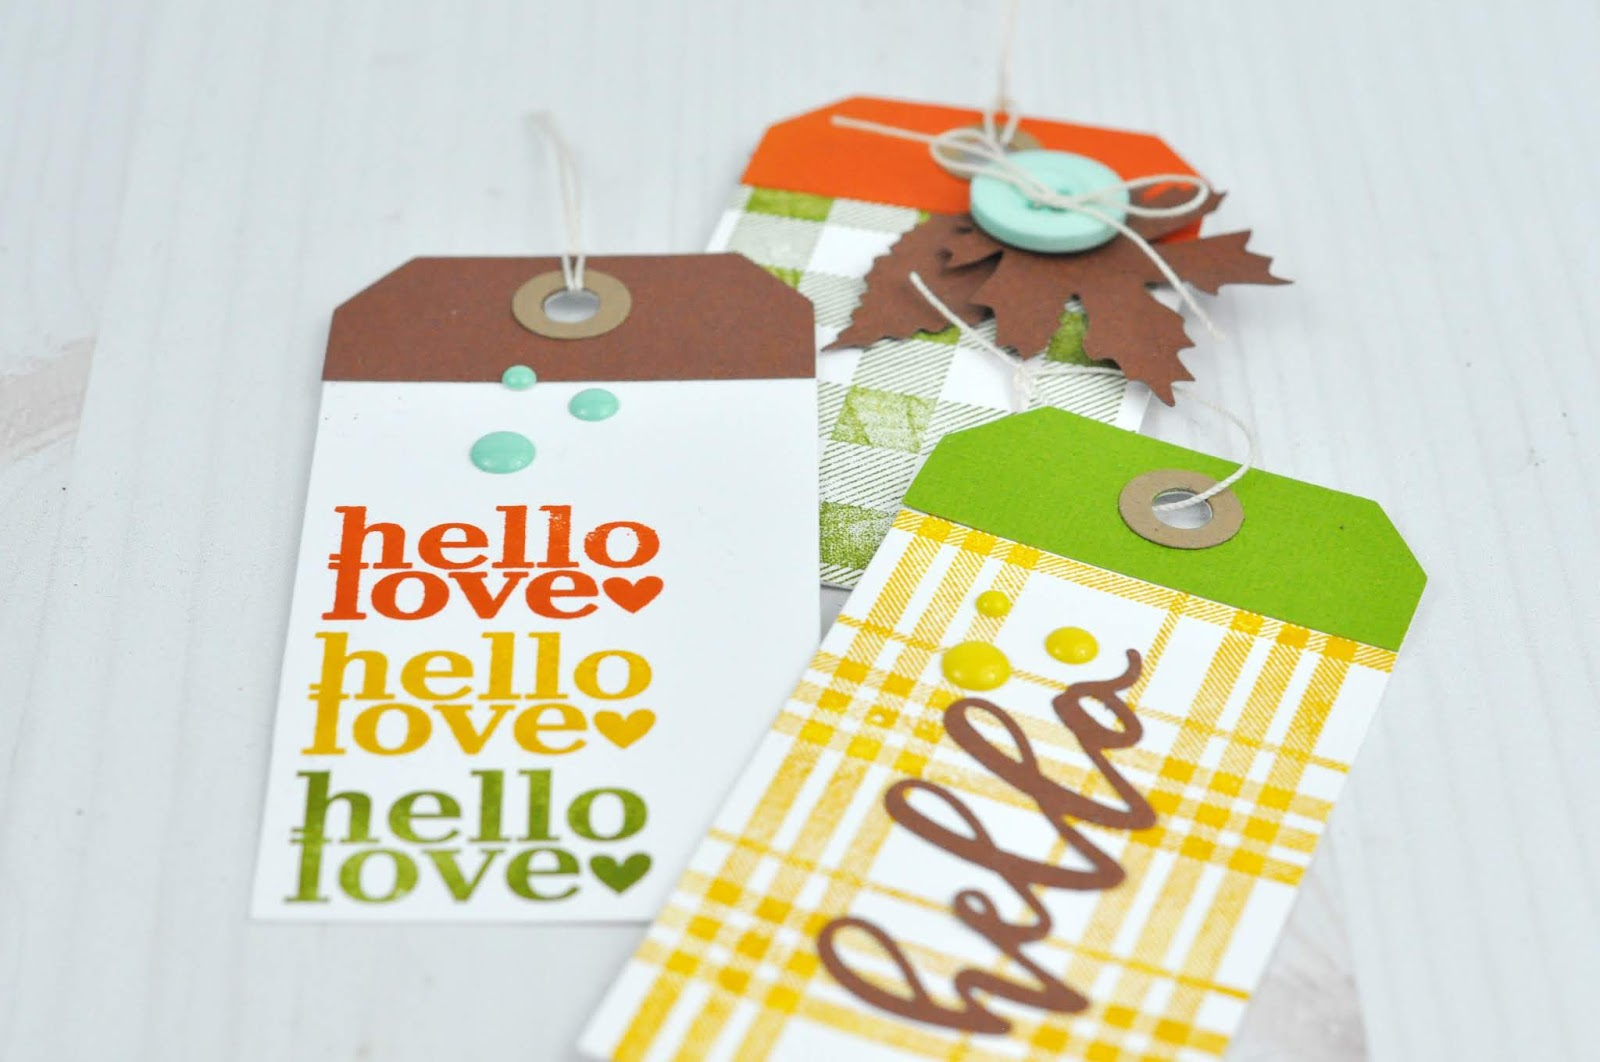 Autumn stamped tags with Echo Park Paper stamps and dies. Jen Gallacher stamps fall tags. #cardmaker #sizzix #echoparkpaper #stamping